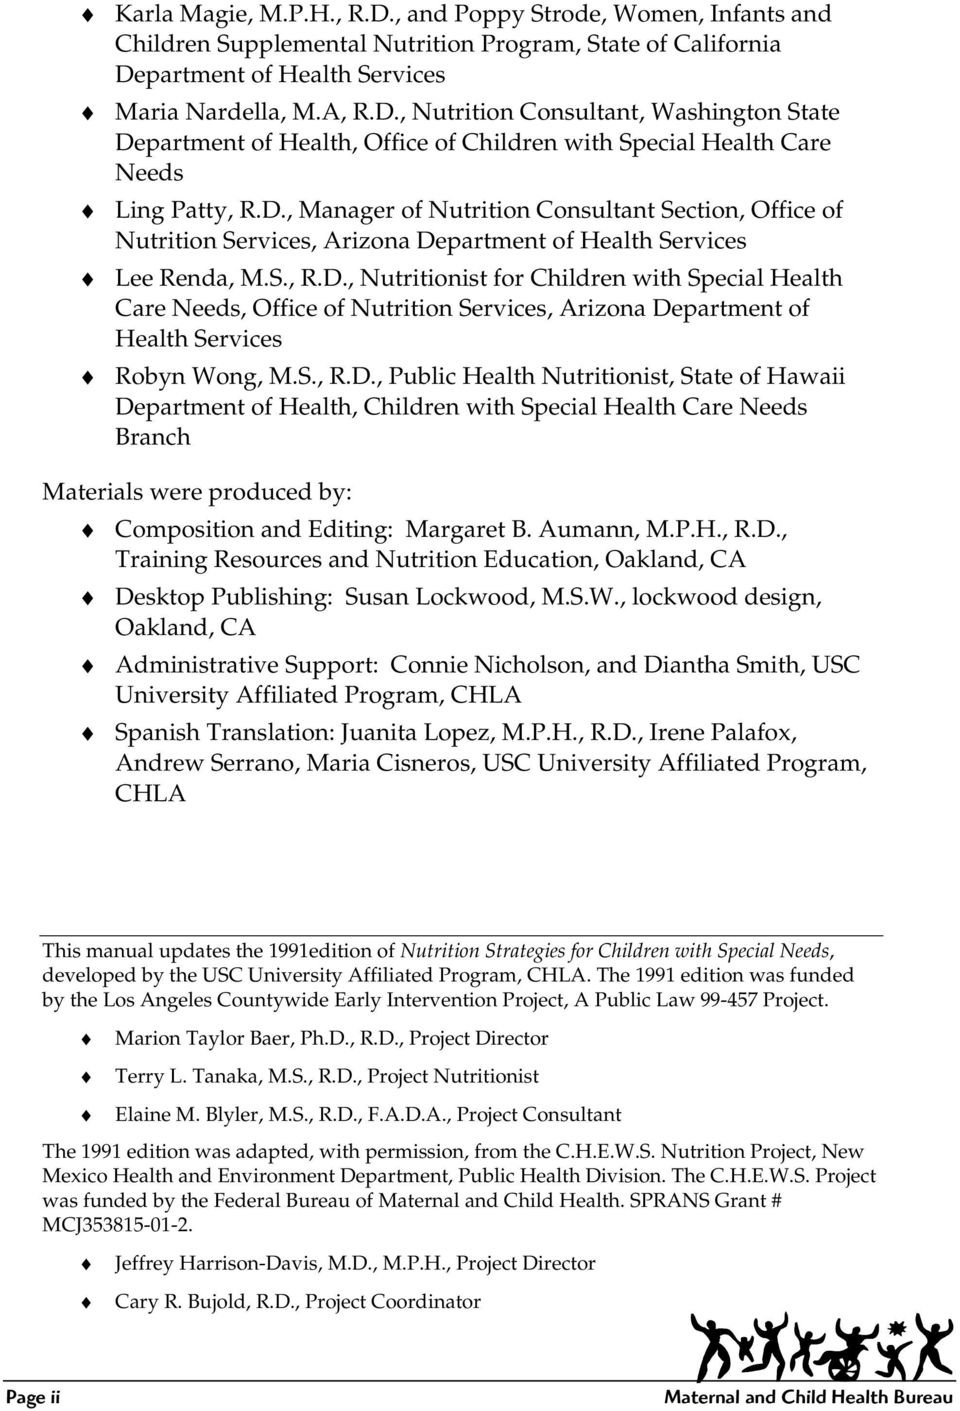 Nutrition Strategies for Children with Special Needs - PDF